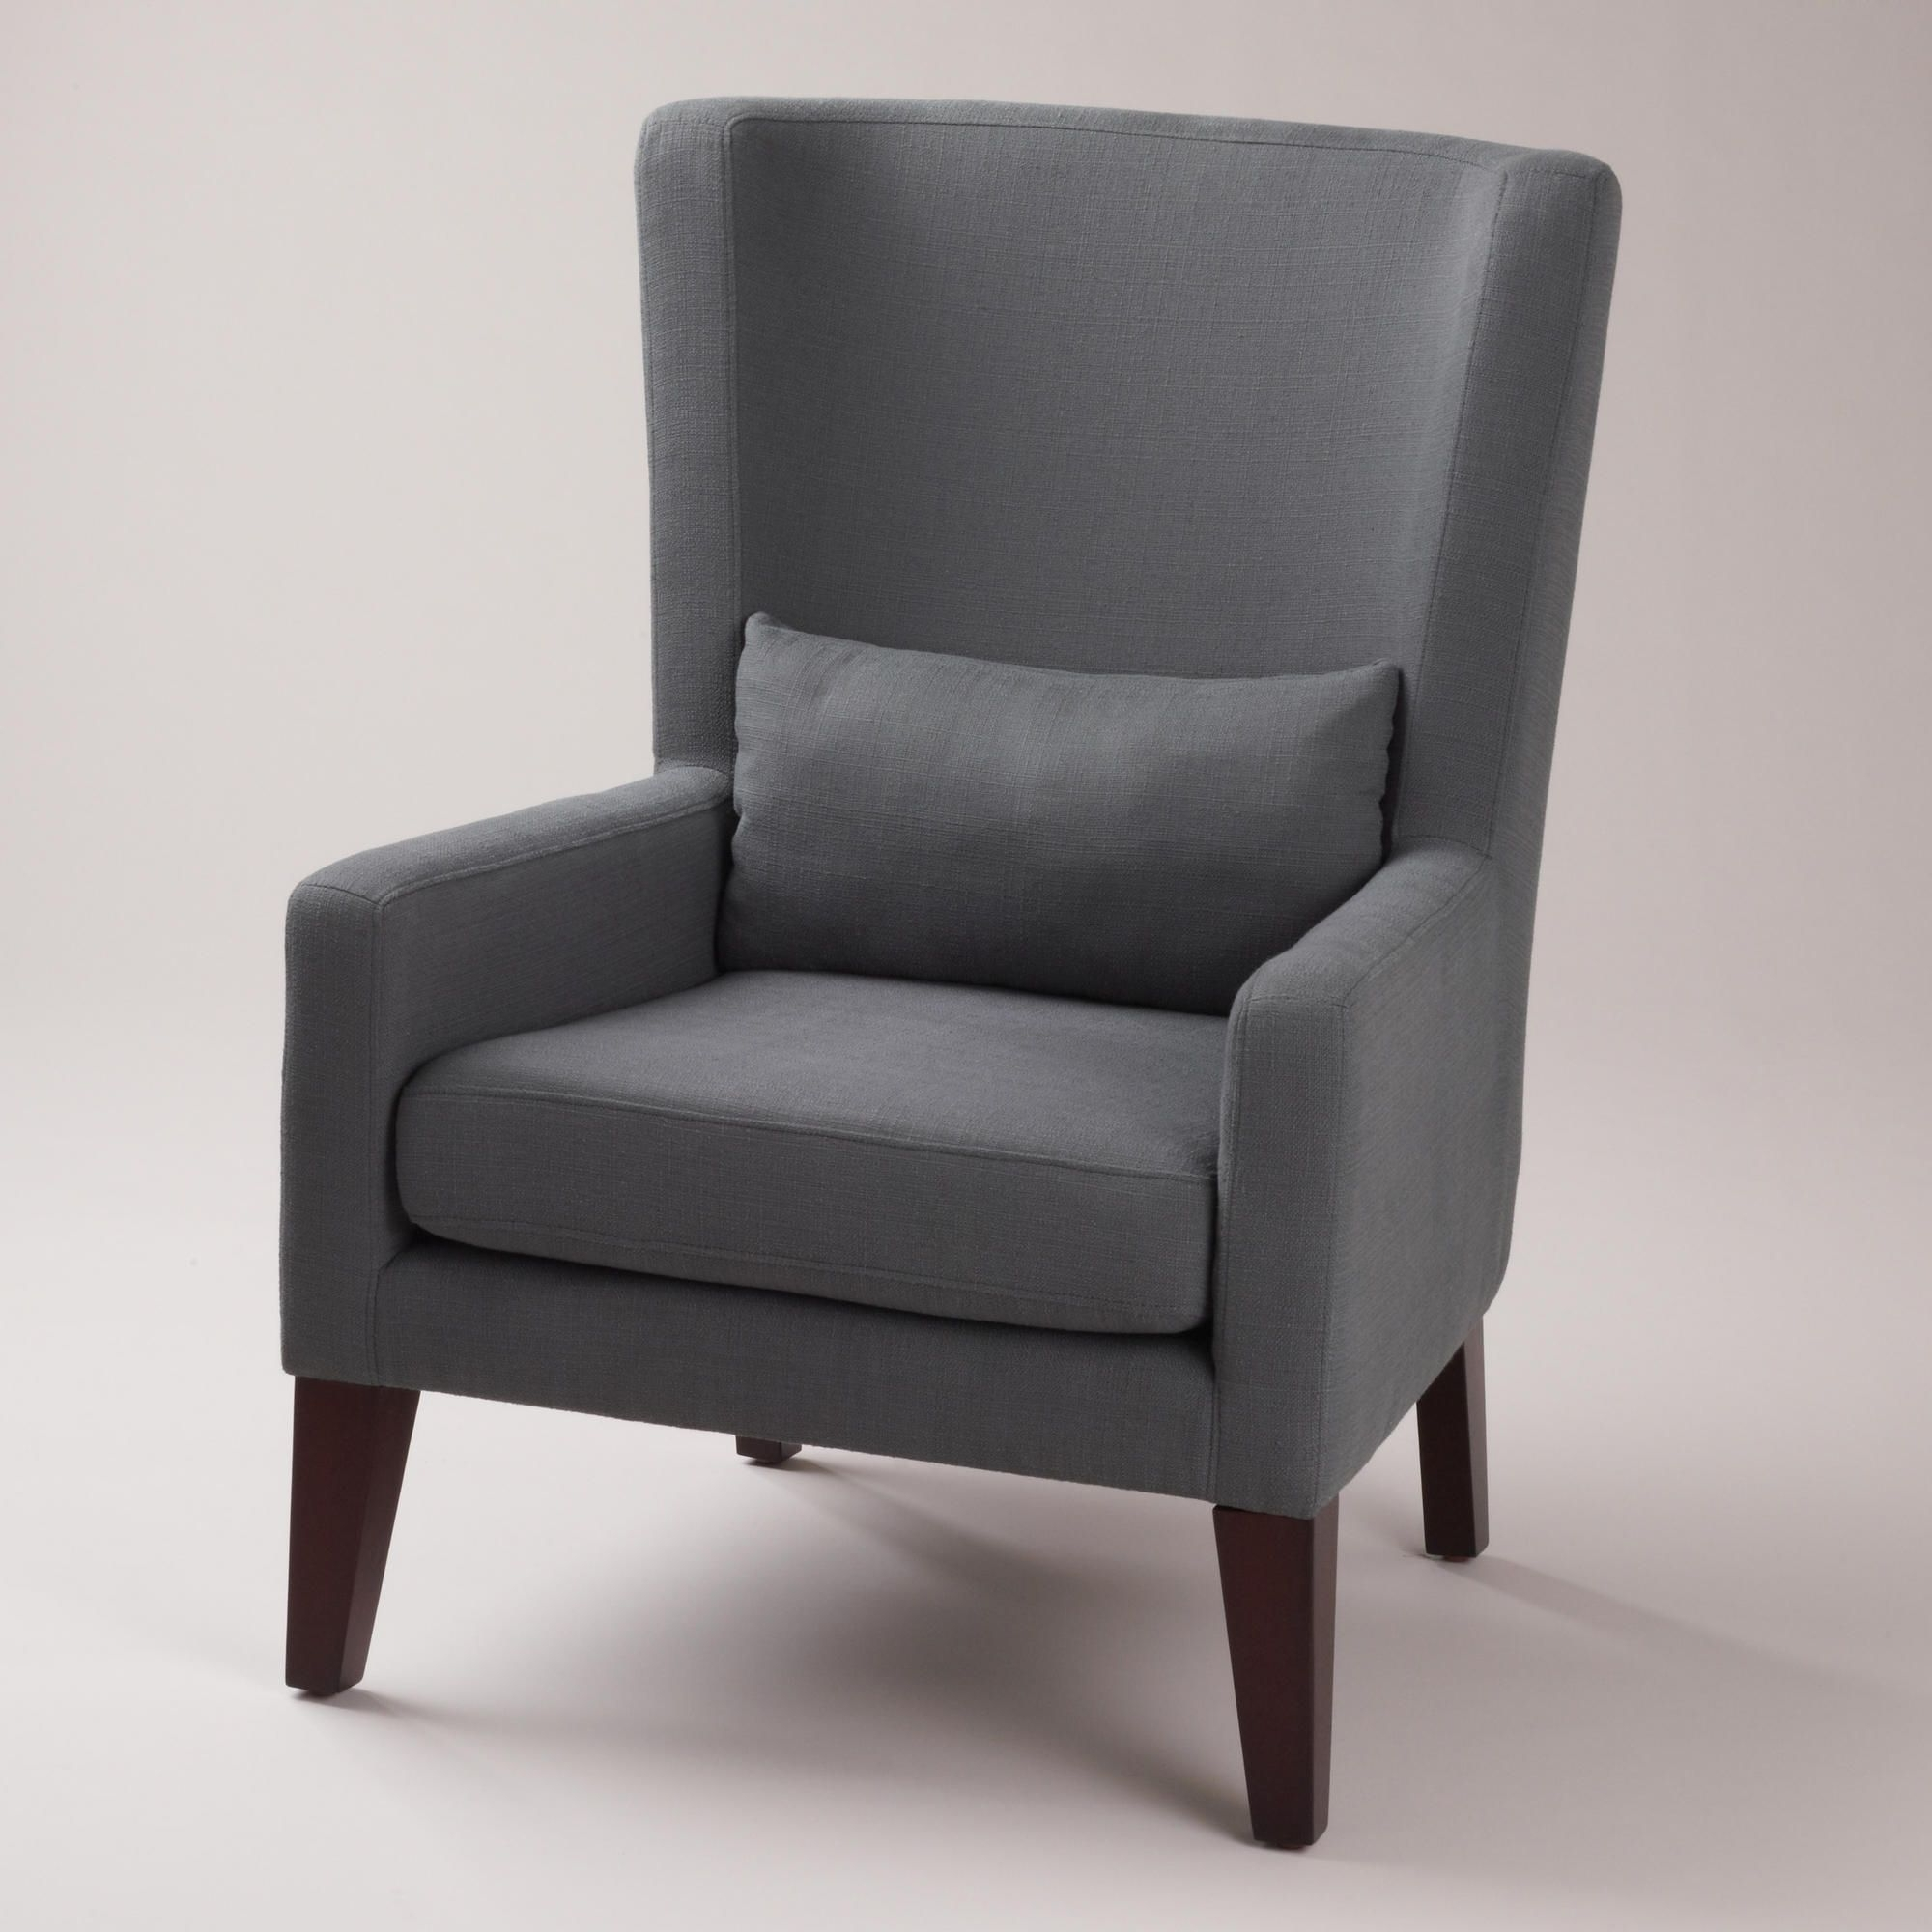 $349 (comes In A Couple Of Colors) Dove Gray Triton High Back Within Well Liked Lindy Dove Grey Side Chairs (View 9 of 20)